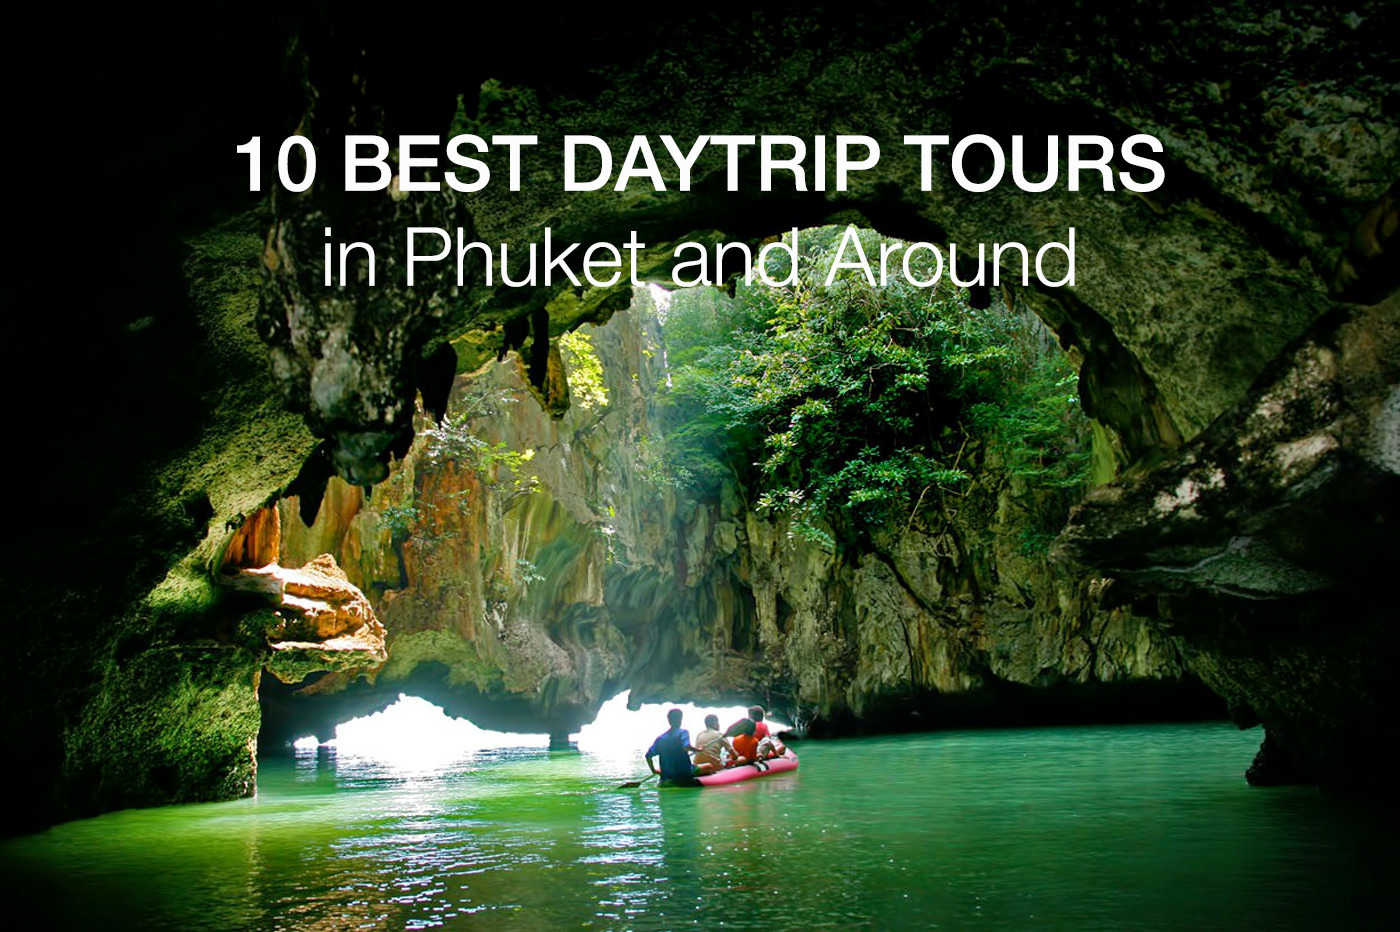 10 Best Tours in Phuket – Phuket Daytrips Tours